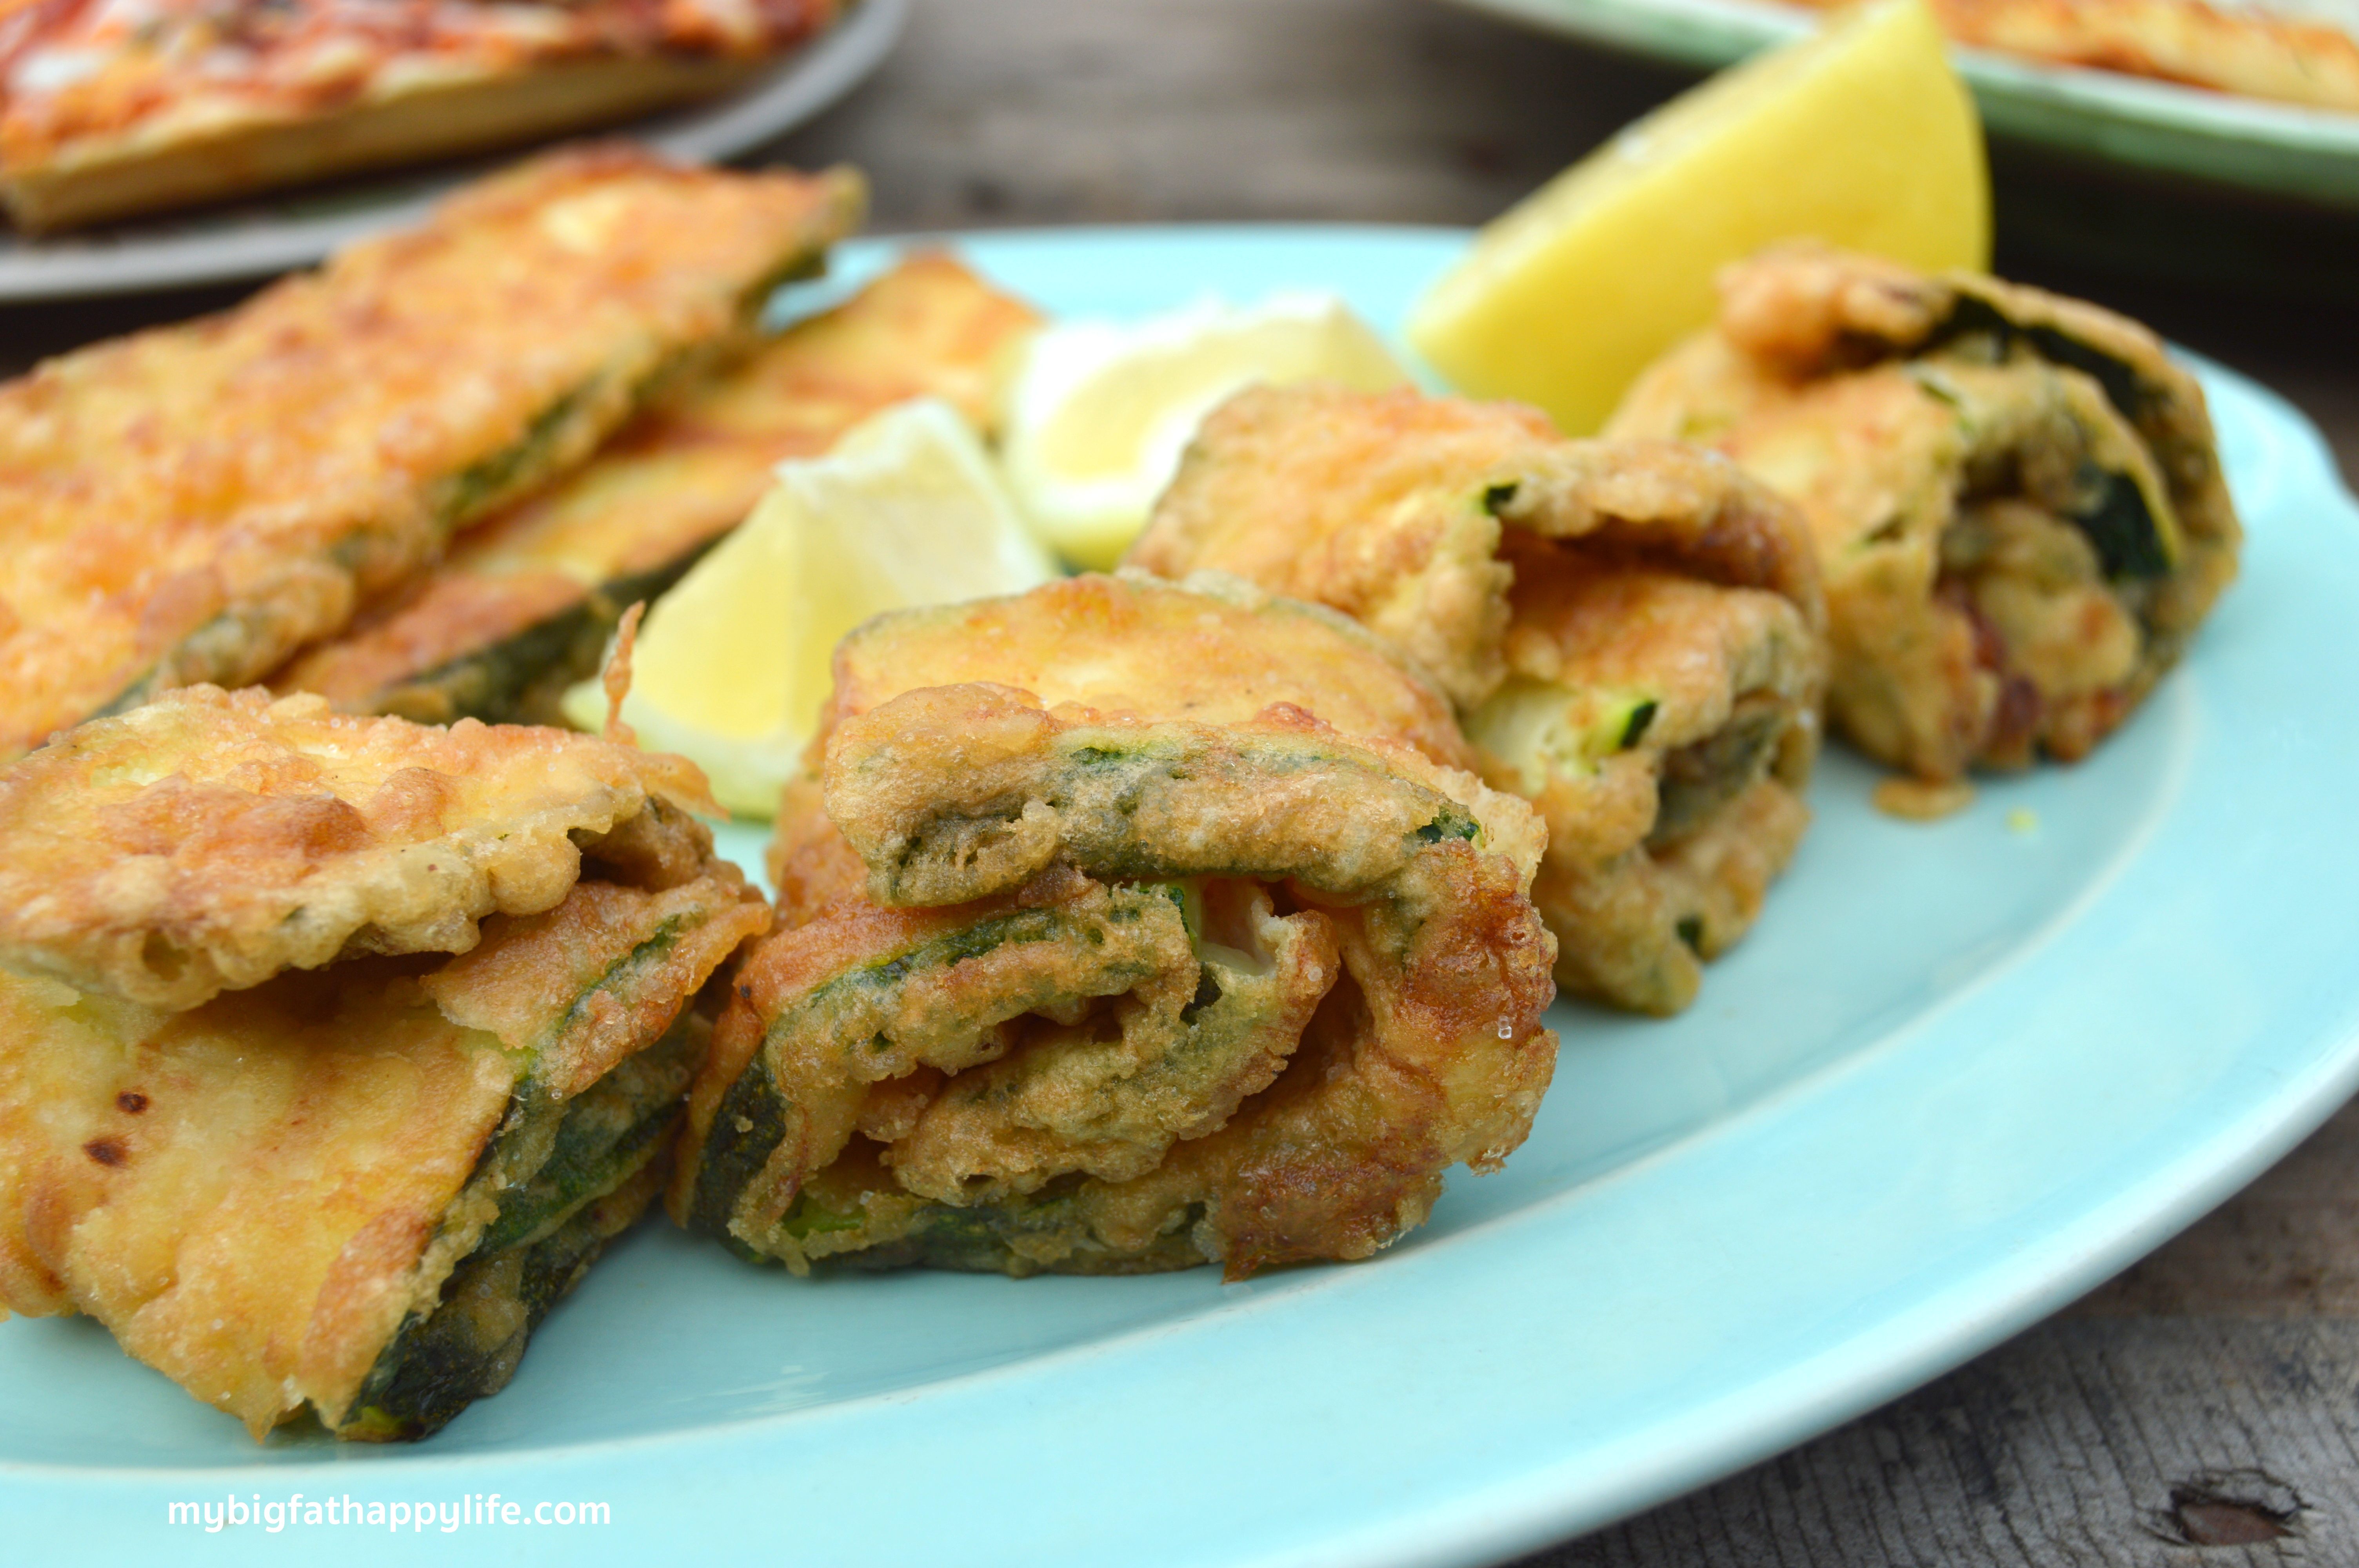 How to fry zucchini